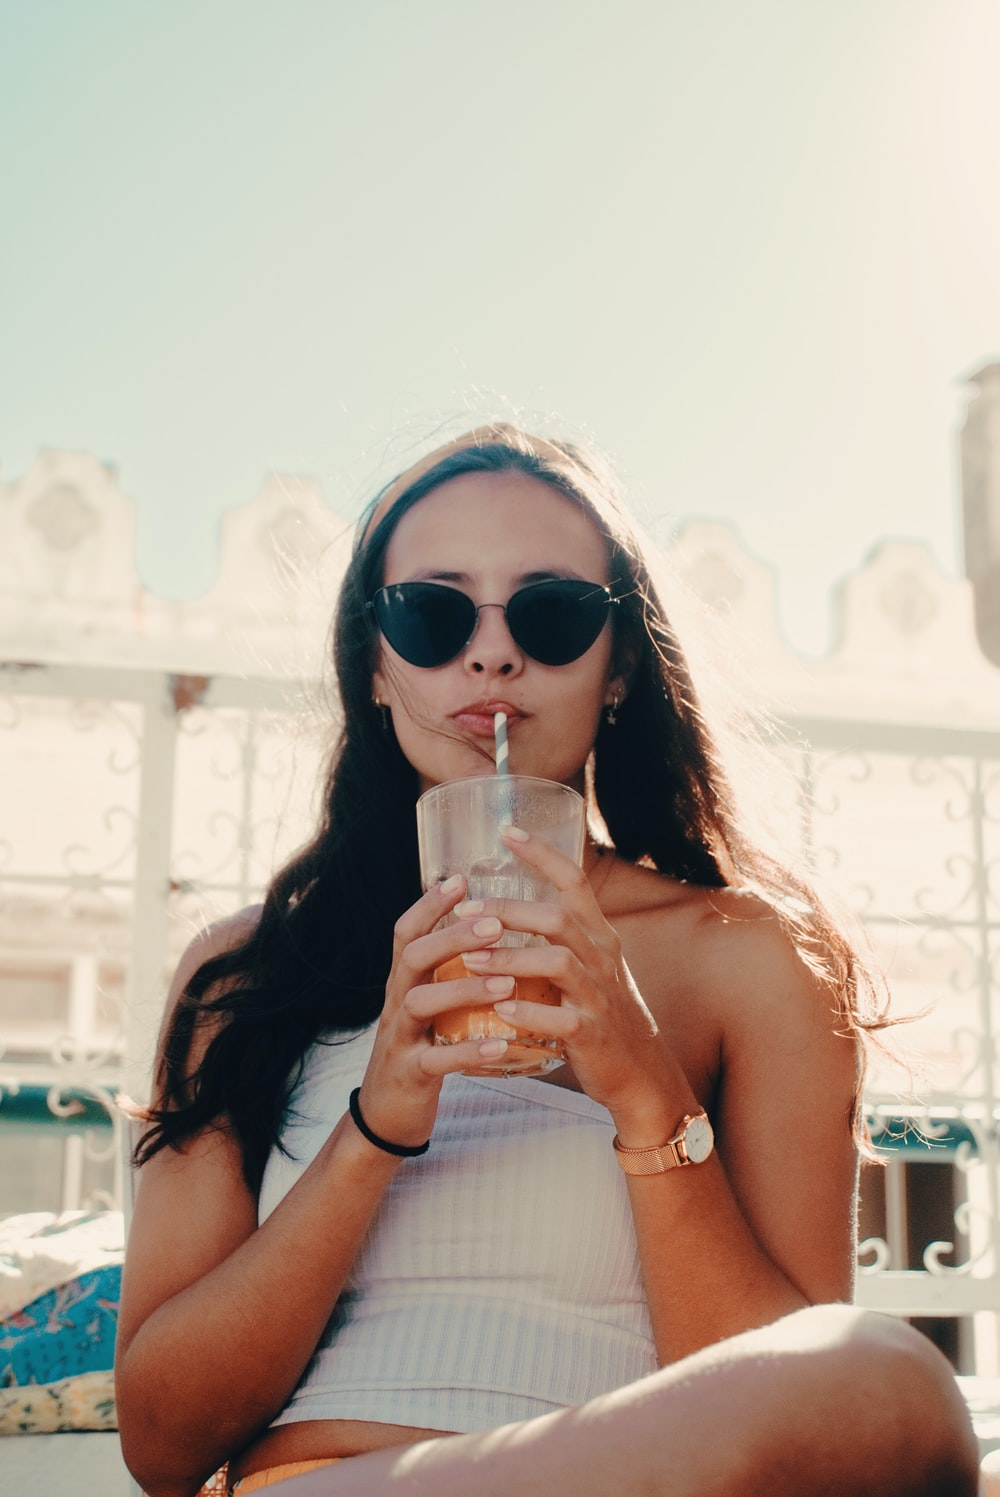 woman sipping straw in glass